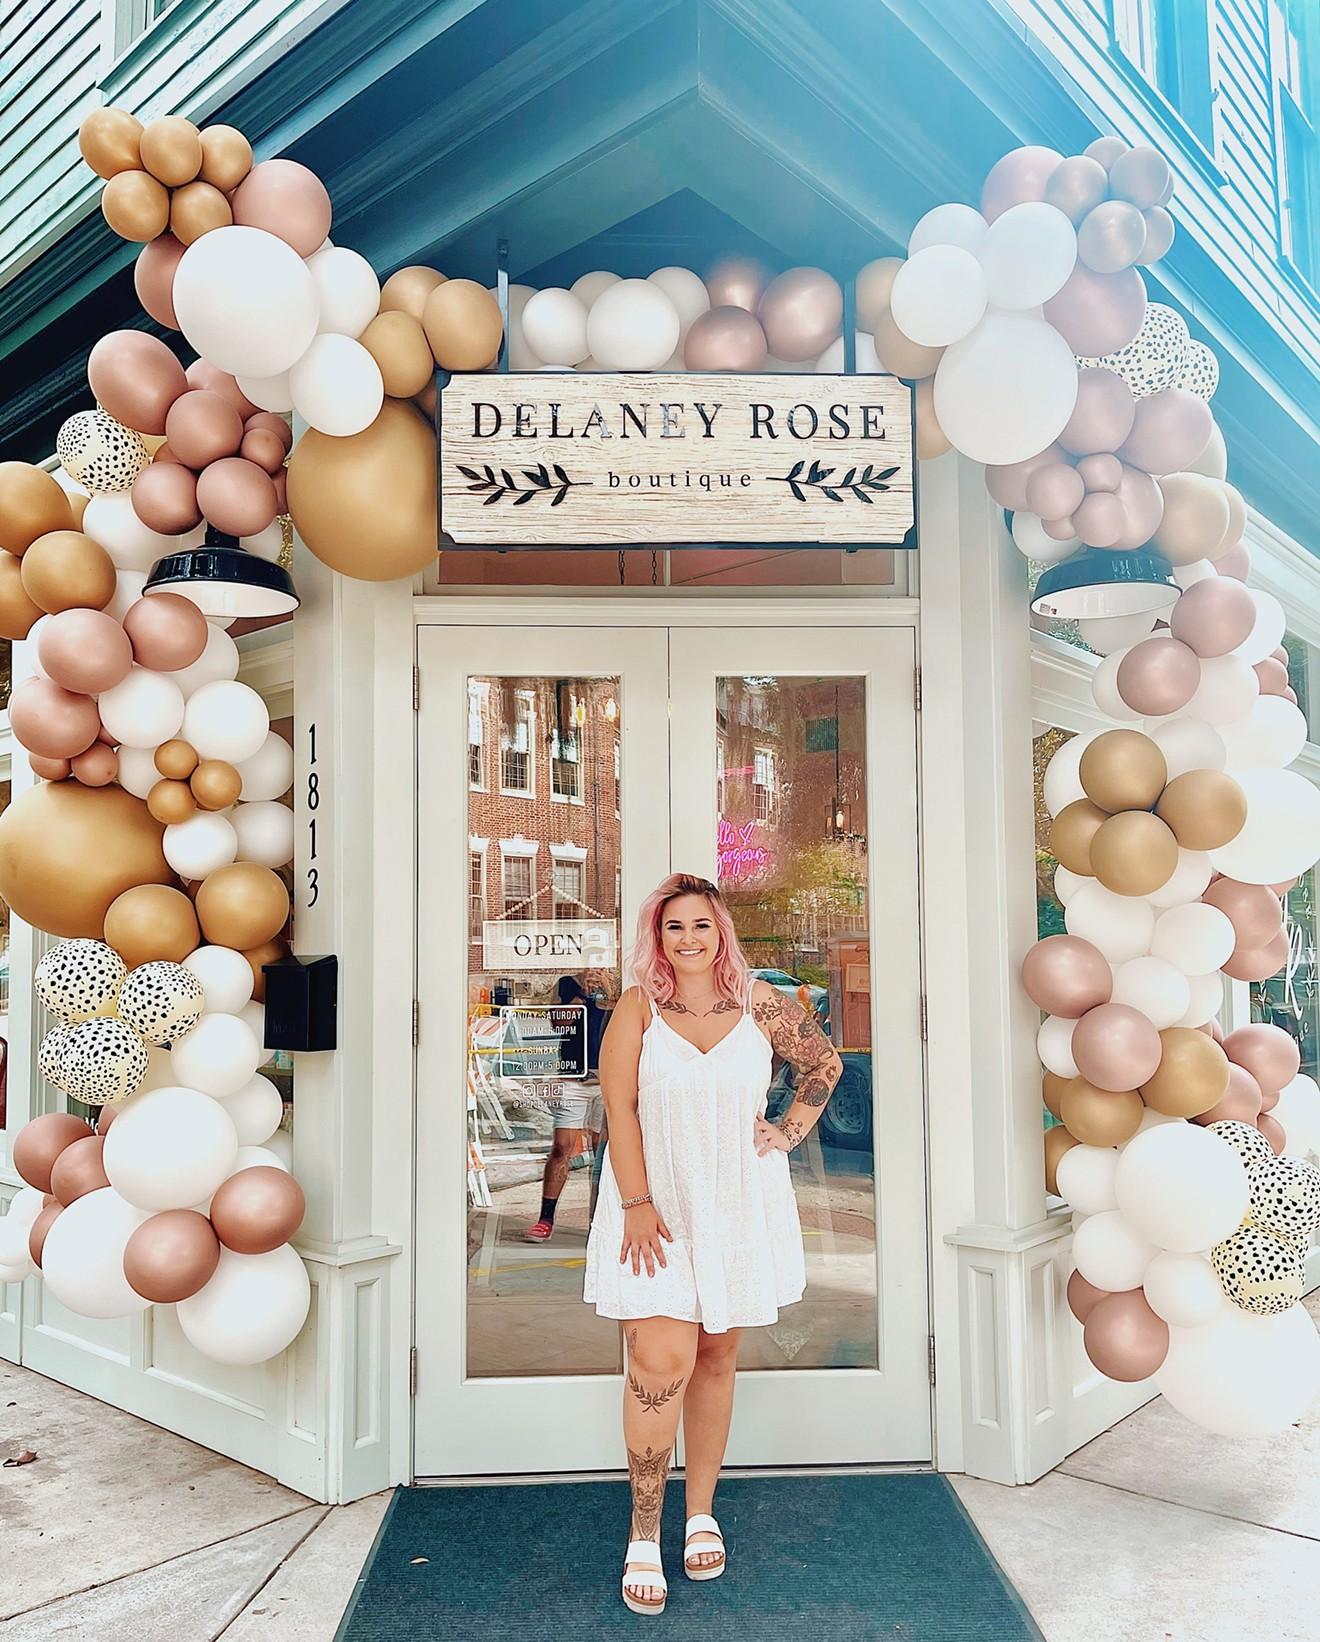 Delaney Rose Erks, owner and creative curator behind Delaney Rose Boutique opens her brick-and-mortar location July 1 on Bull St. in the Starland District.